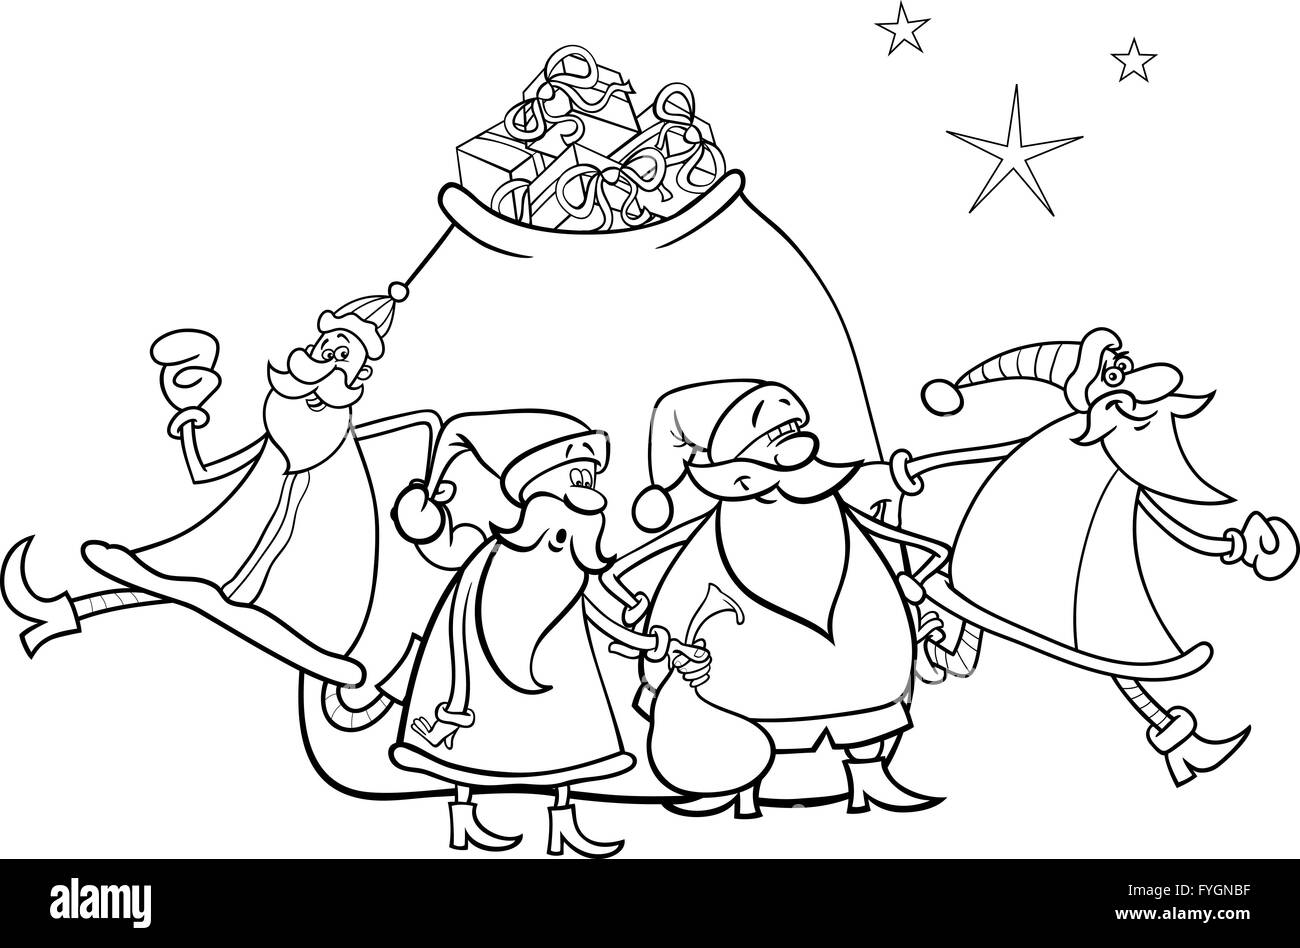 Free Printable Santa Claus Coloring Pages For Kids | 948x1300